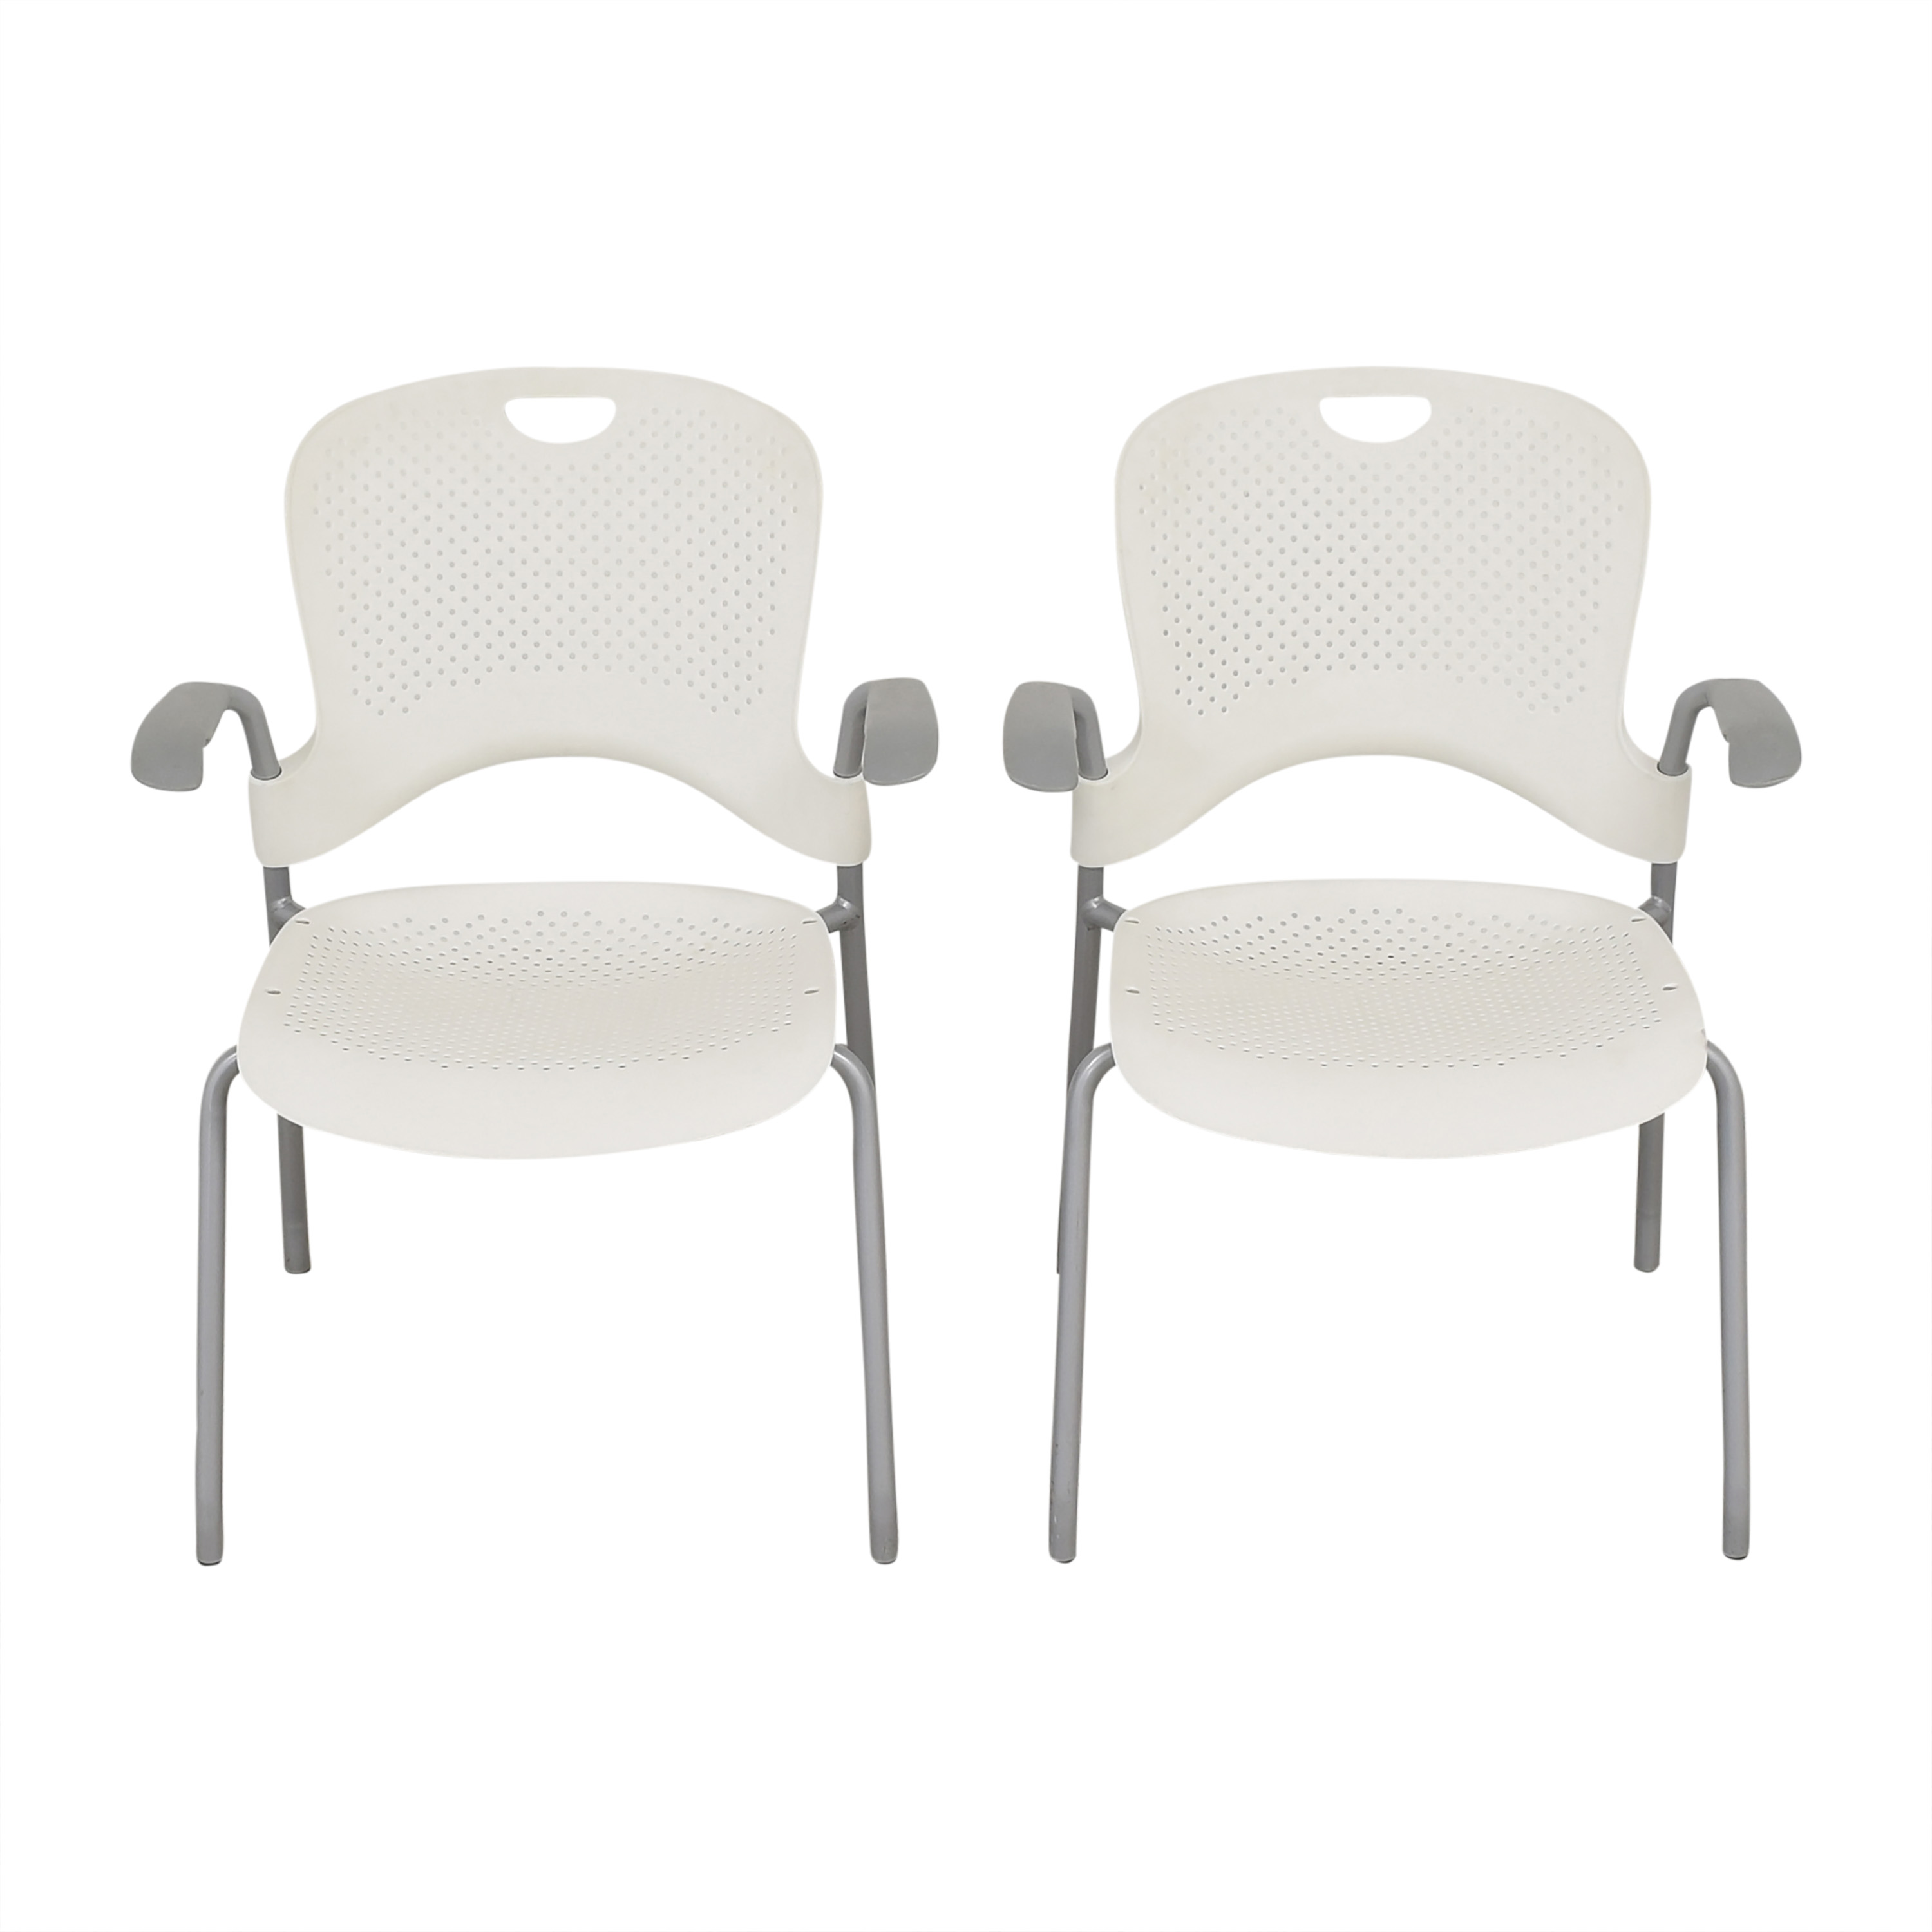 Herman Miller Caper Stacking Chairs / Home Office Chairs